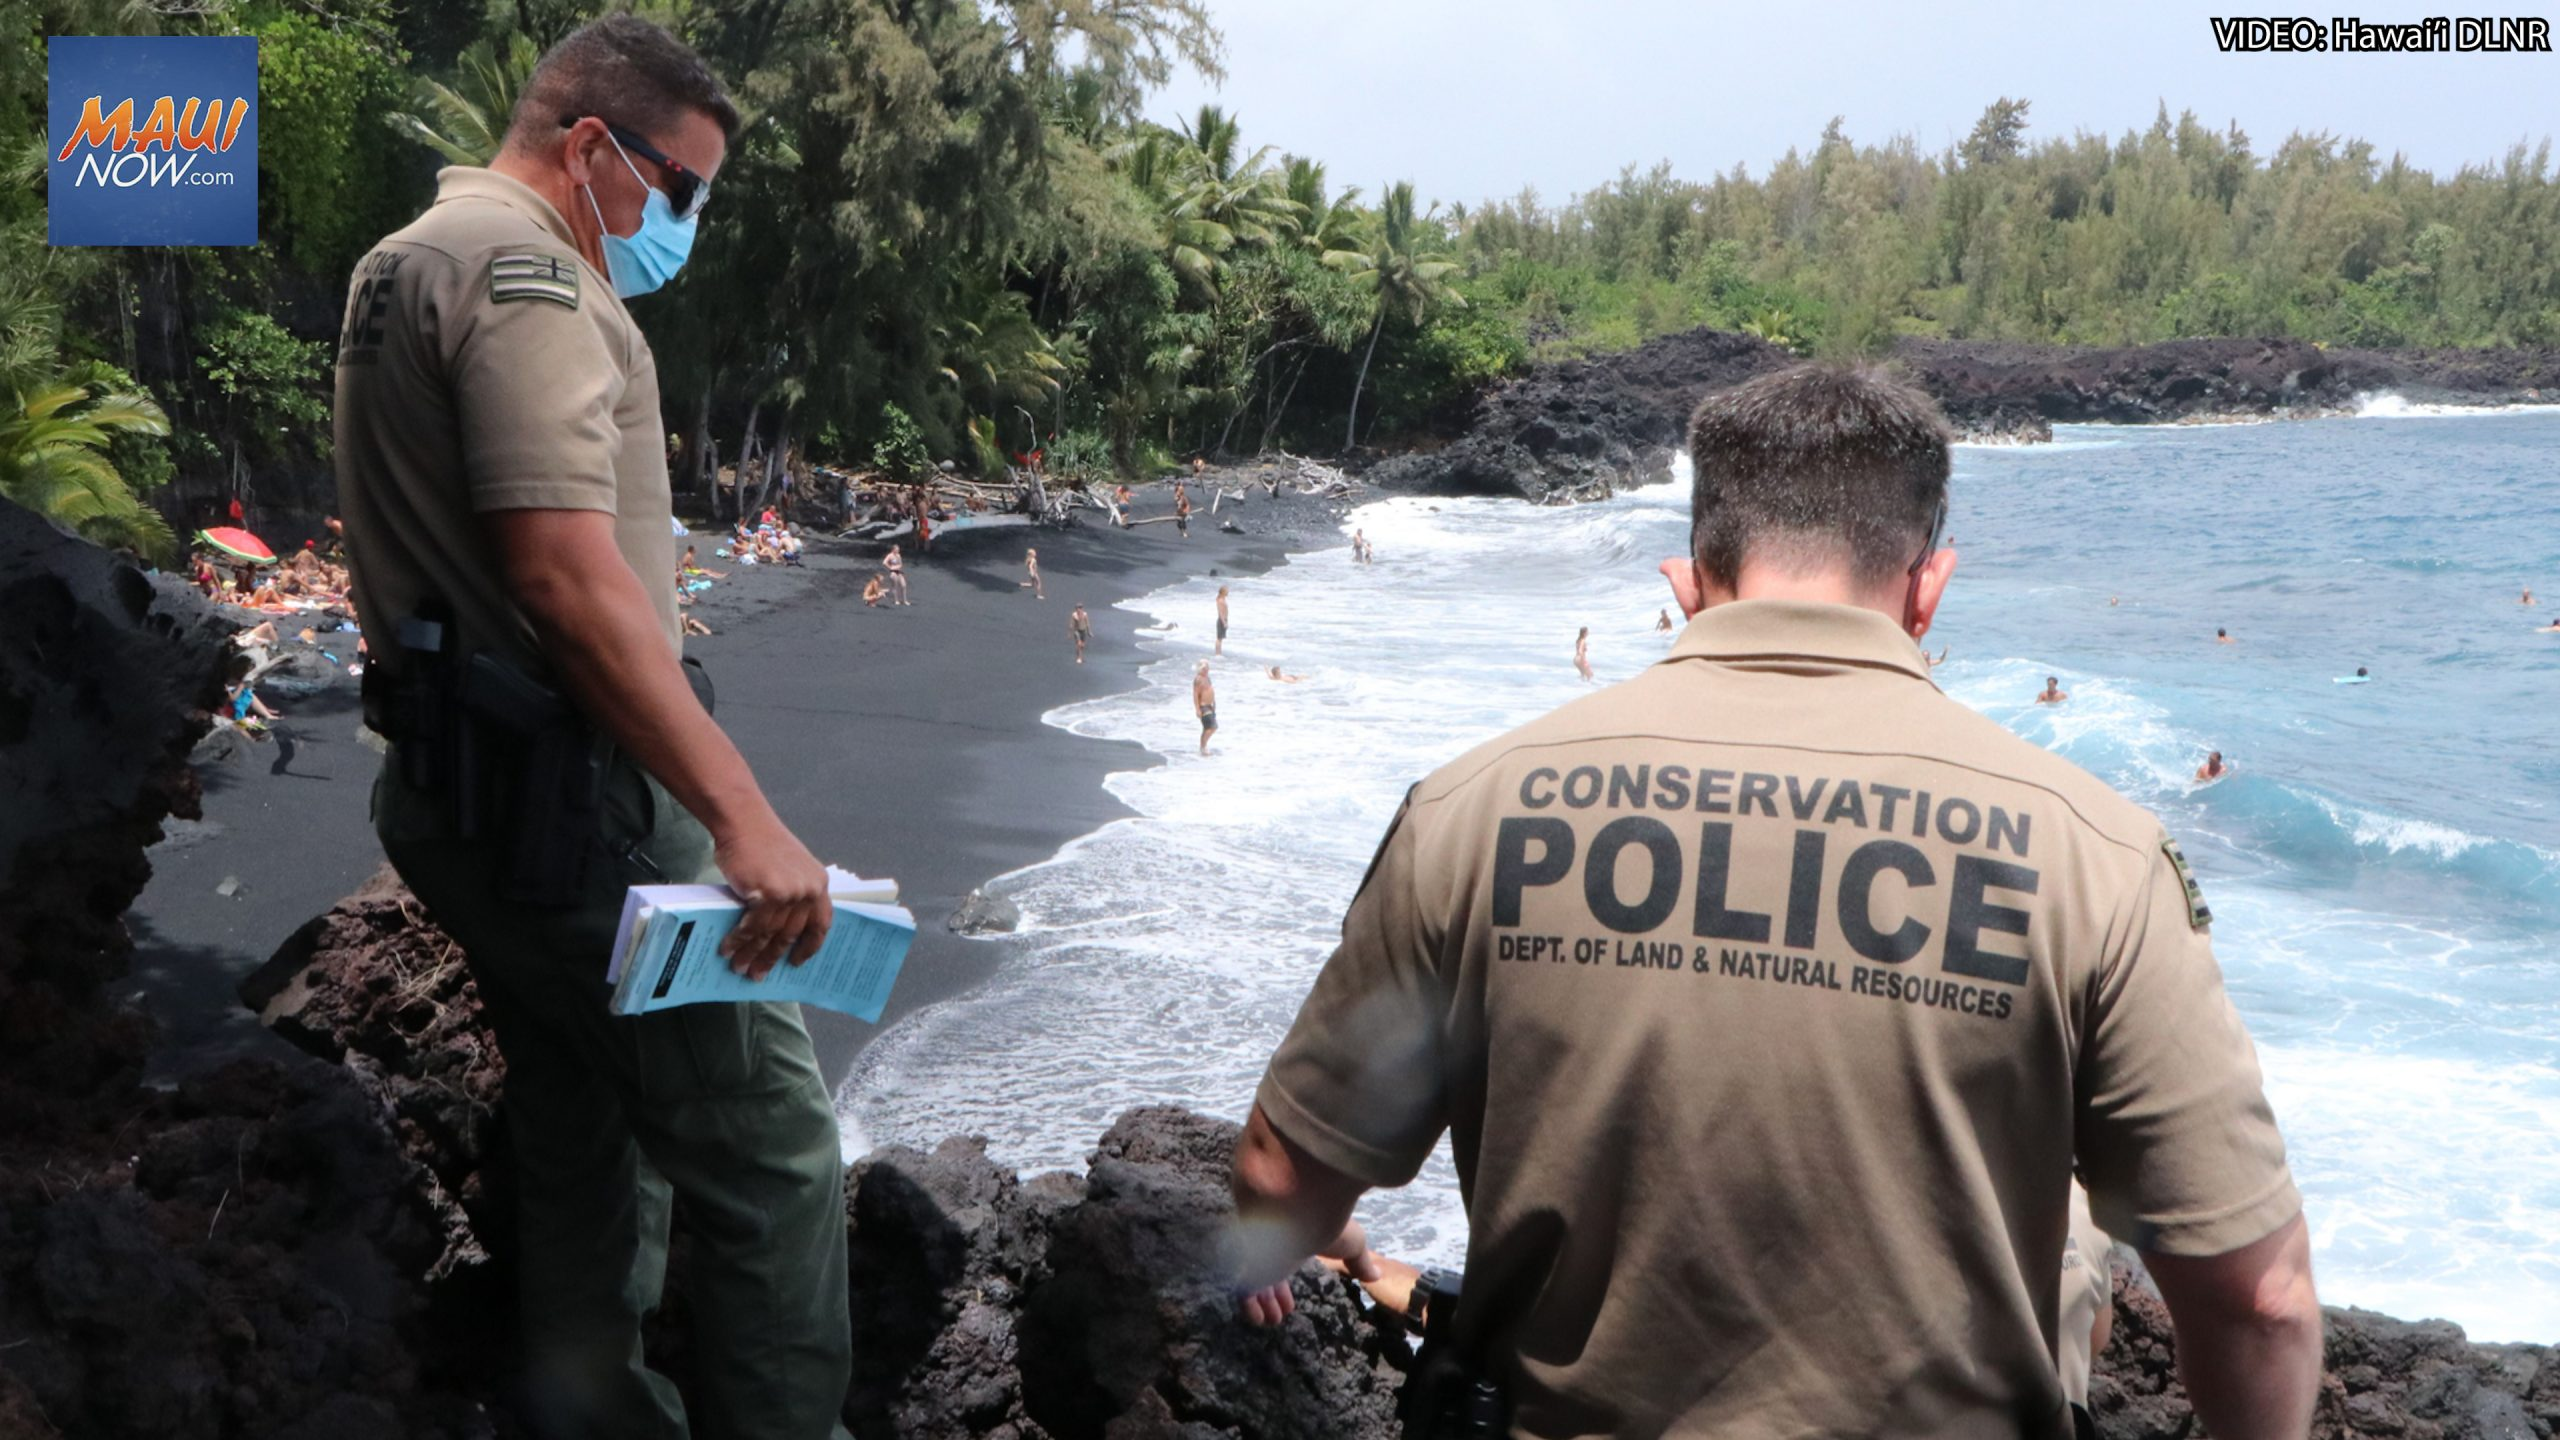 100+ Citations Issued at Kehena Beach in Month-Long Enforcement